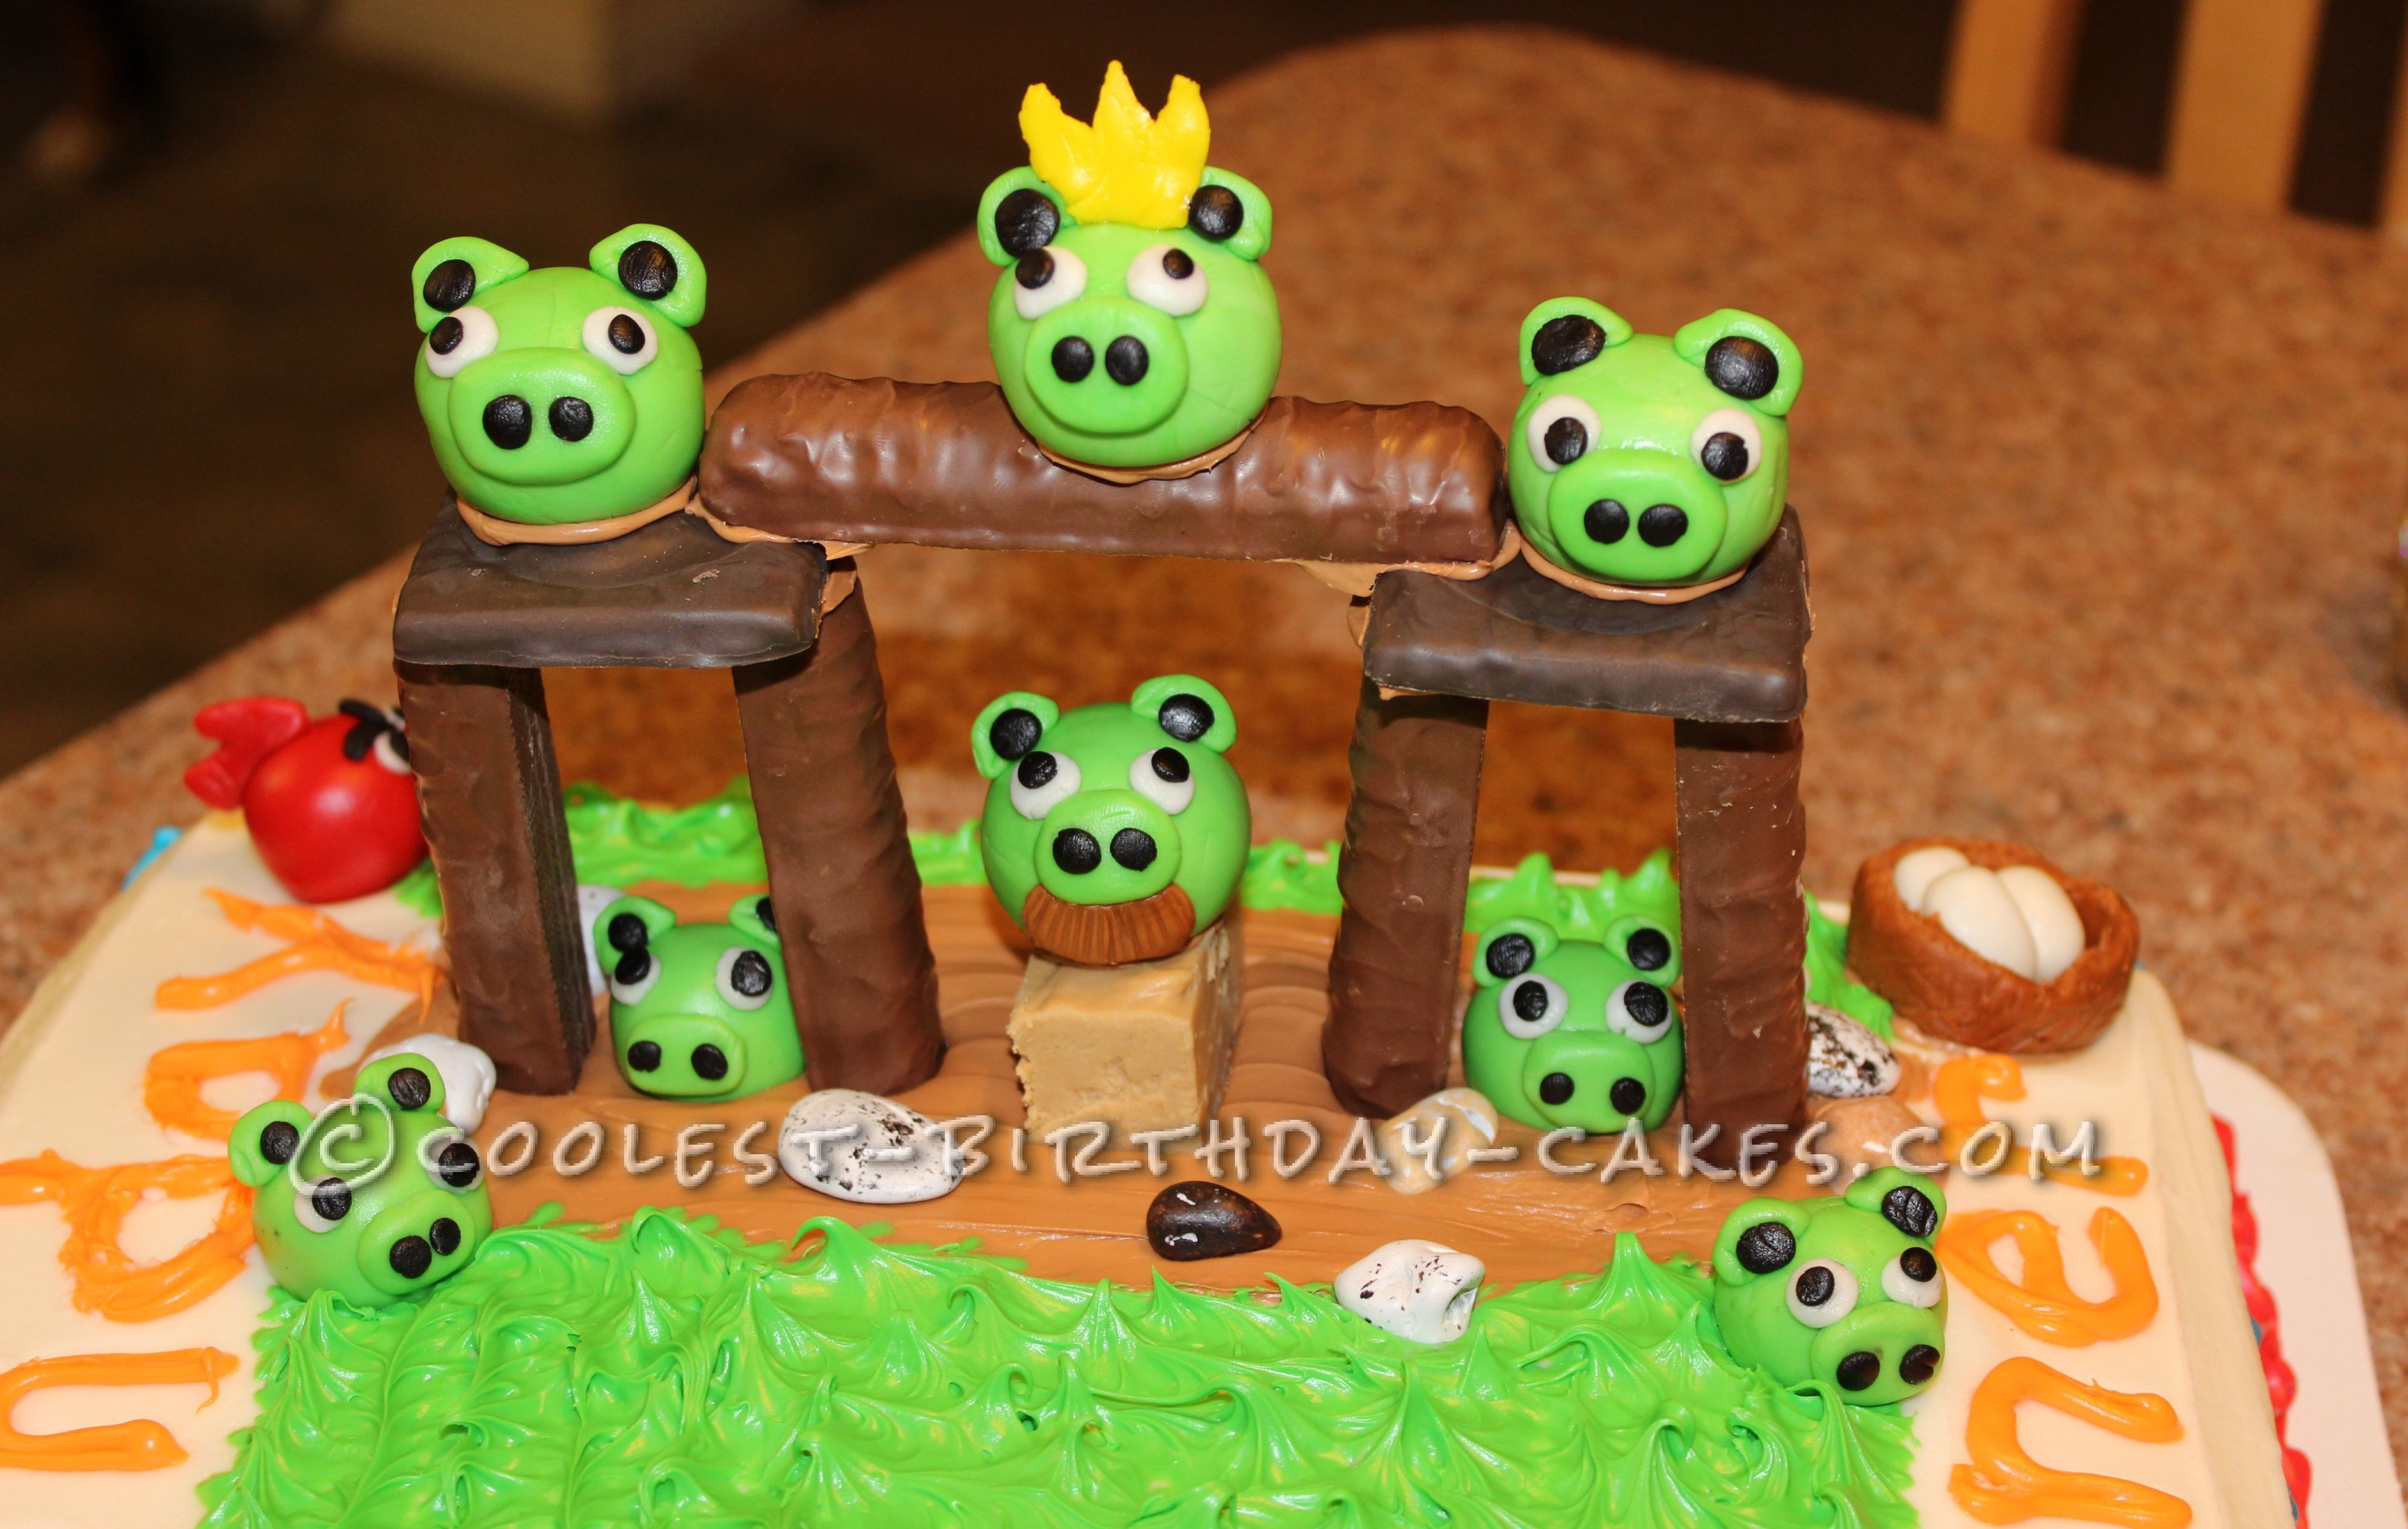 Coolest Angry Birds Birthday Cake